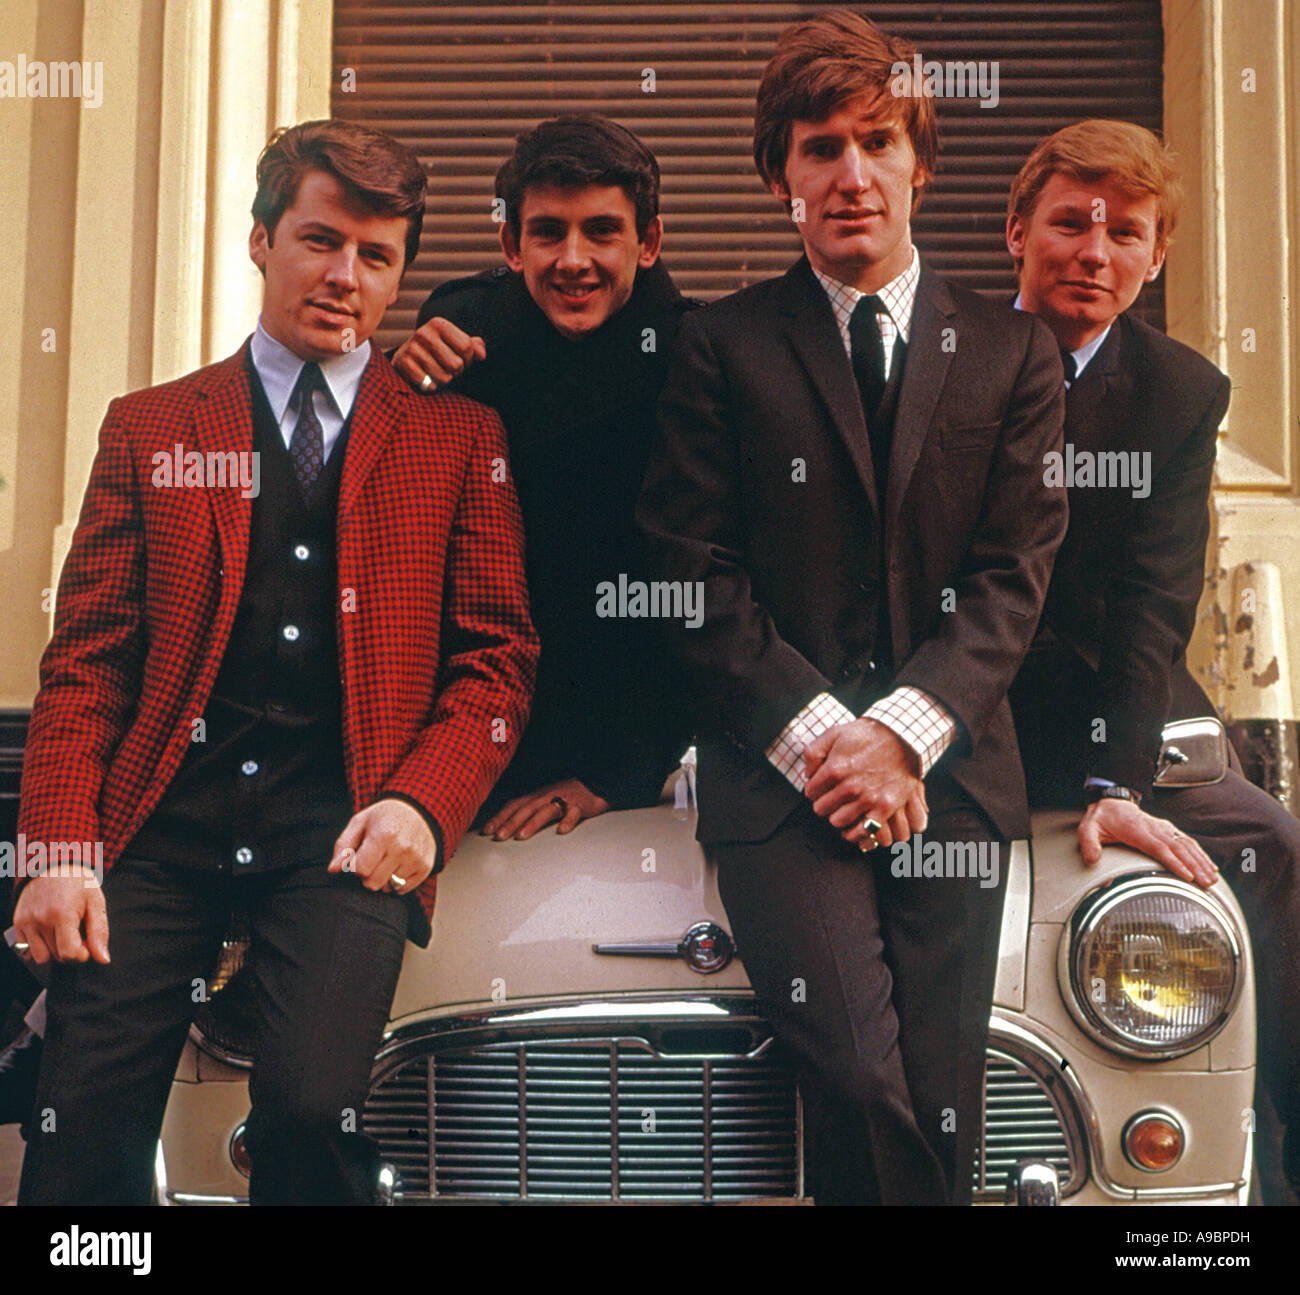 SEARCHERS - UK pop group in 1966 from l: Mike Pender, Frank Allen, Chris Curtis and John McNally. - Stock Image